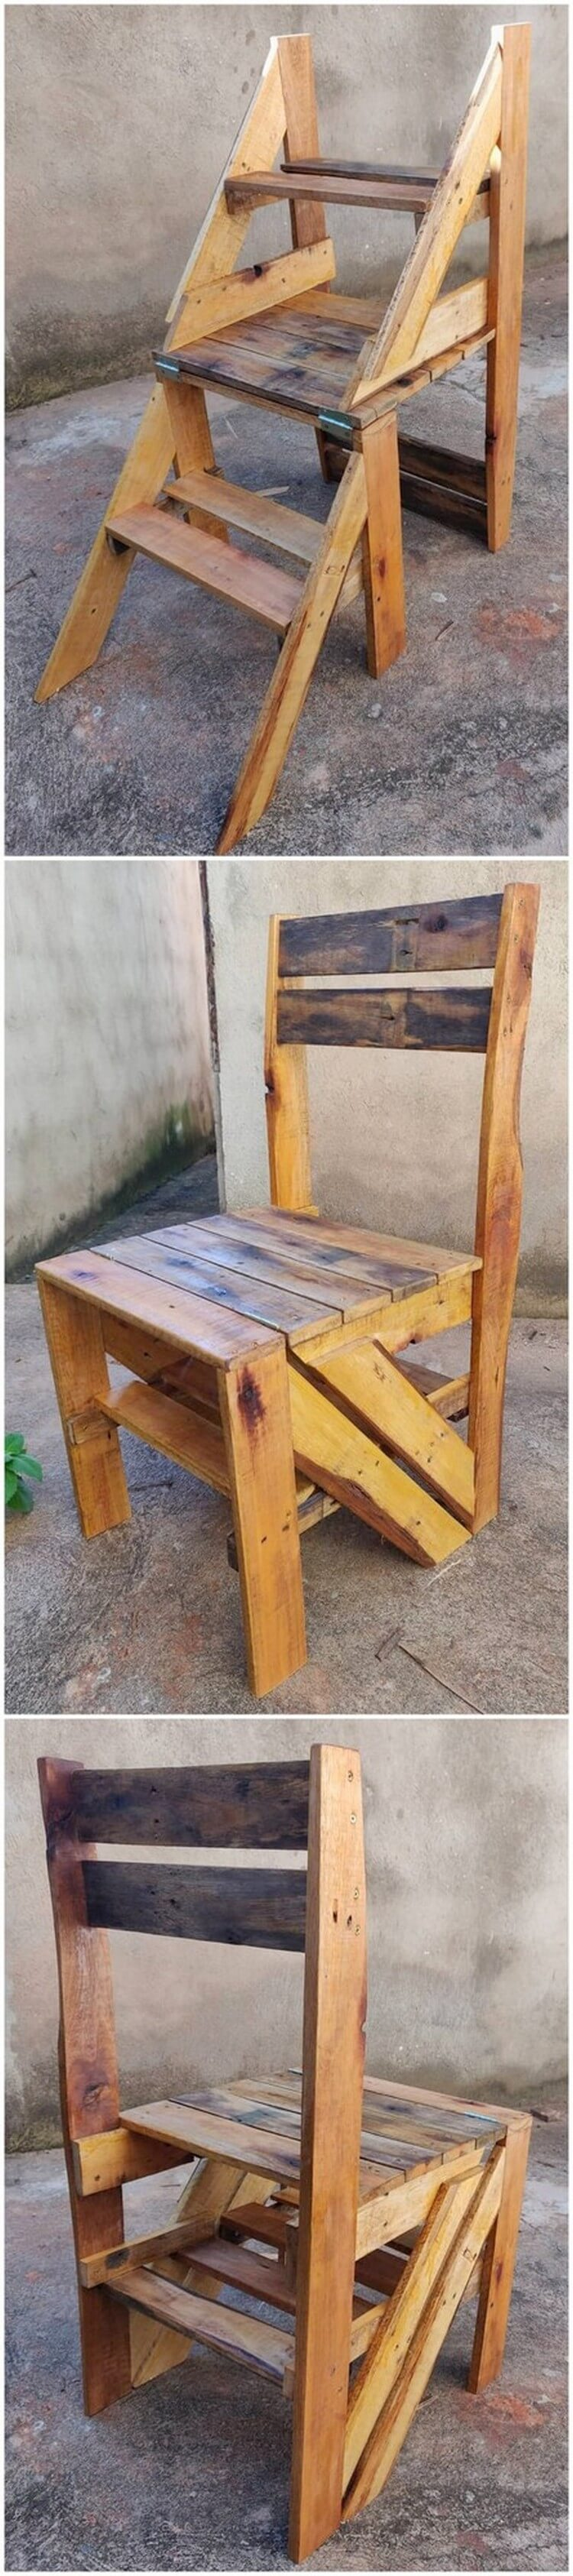 Pallet Stair or Convertible Chair